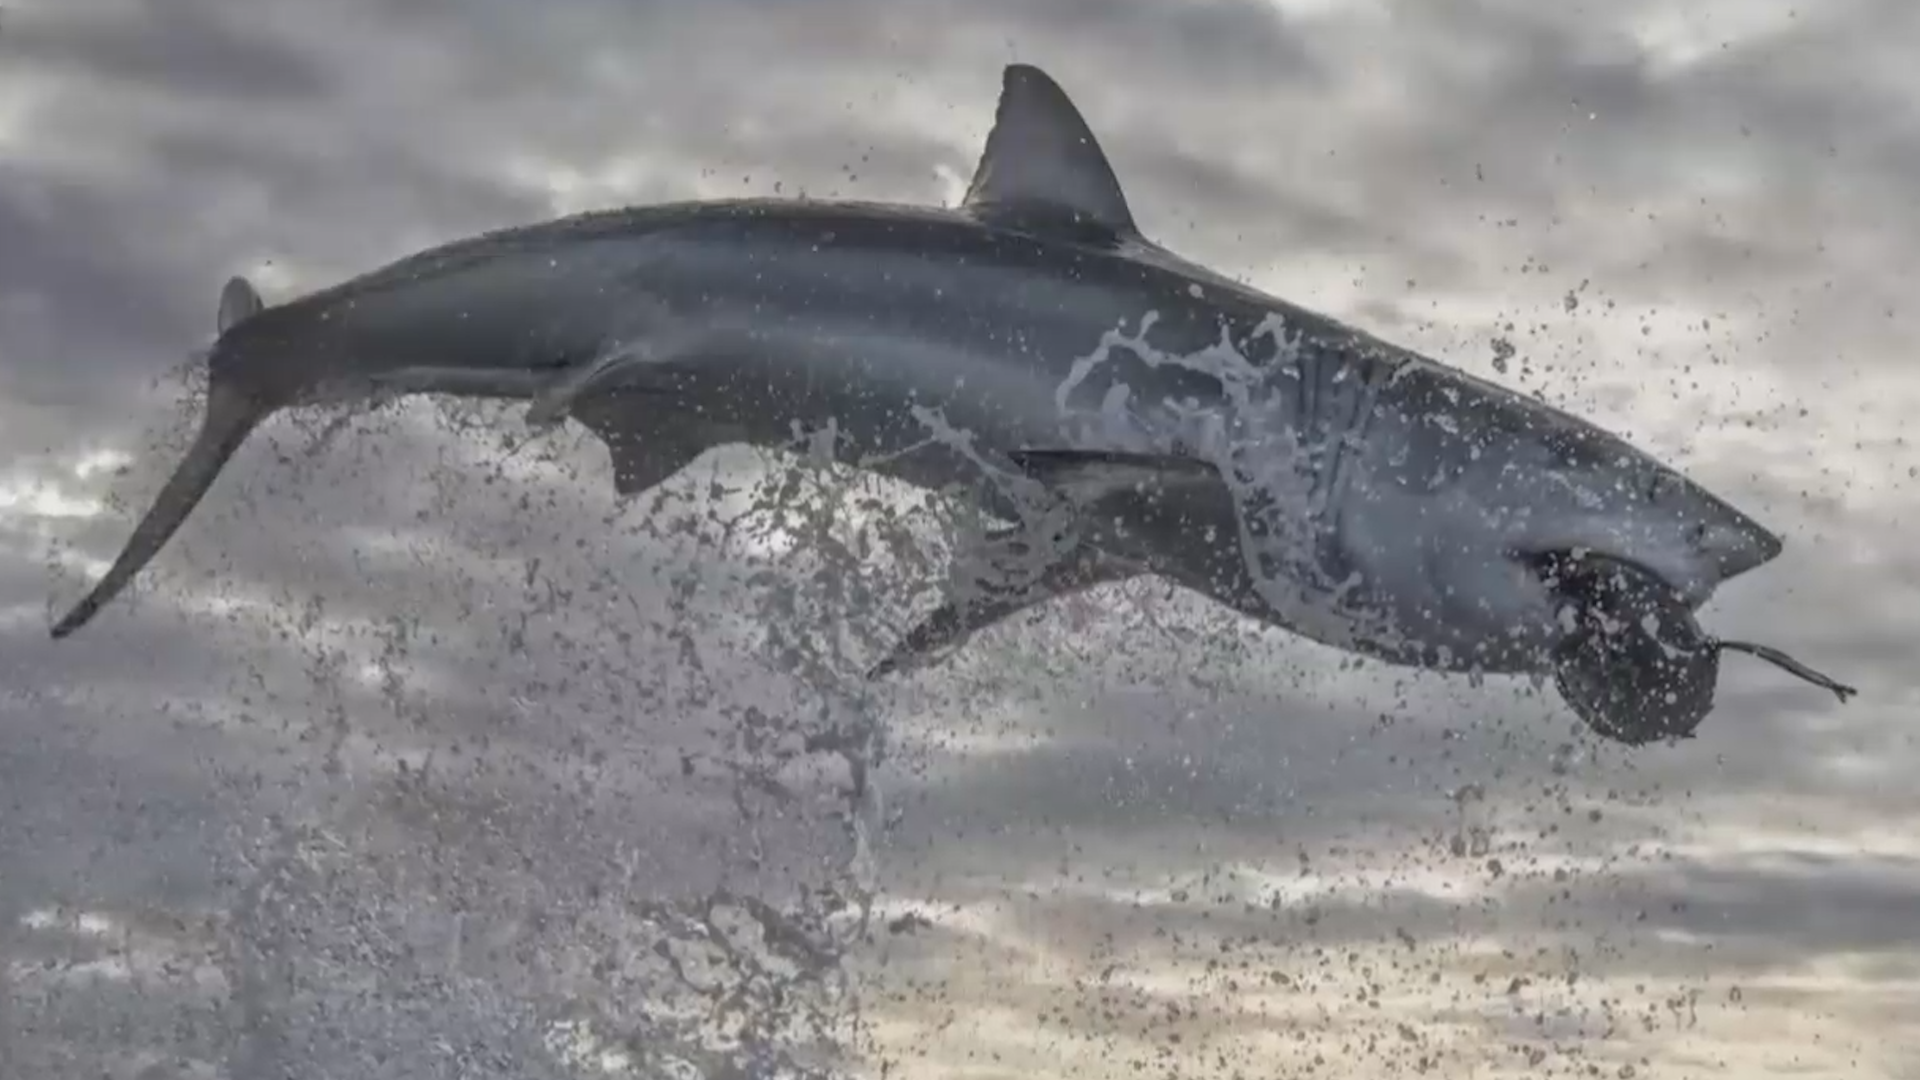 Record-breaking shark breach caught on camera: 'The photo you dream of' thumbnail